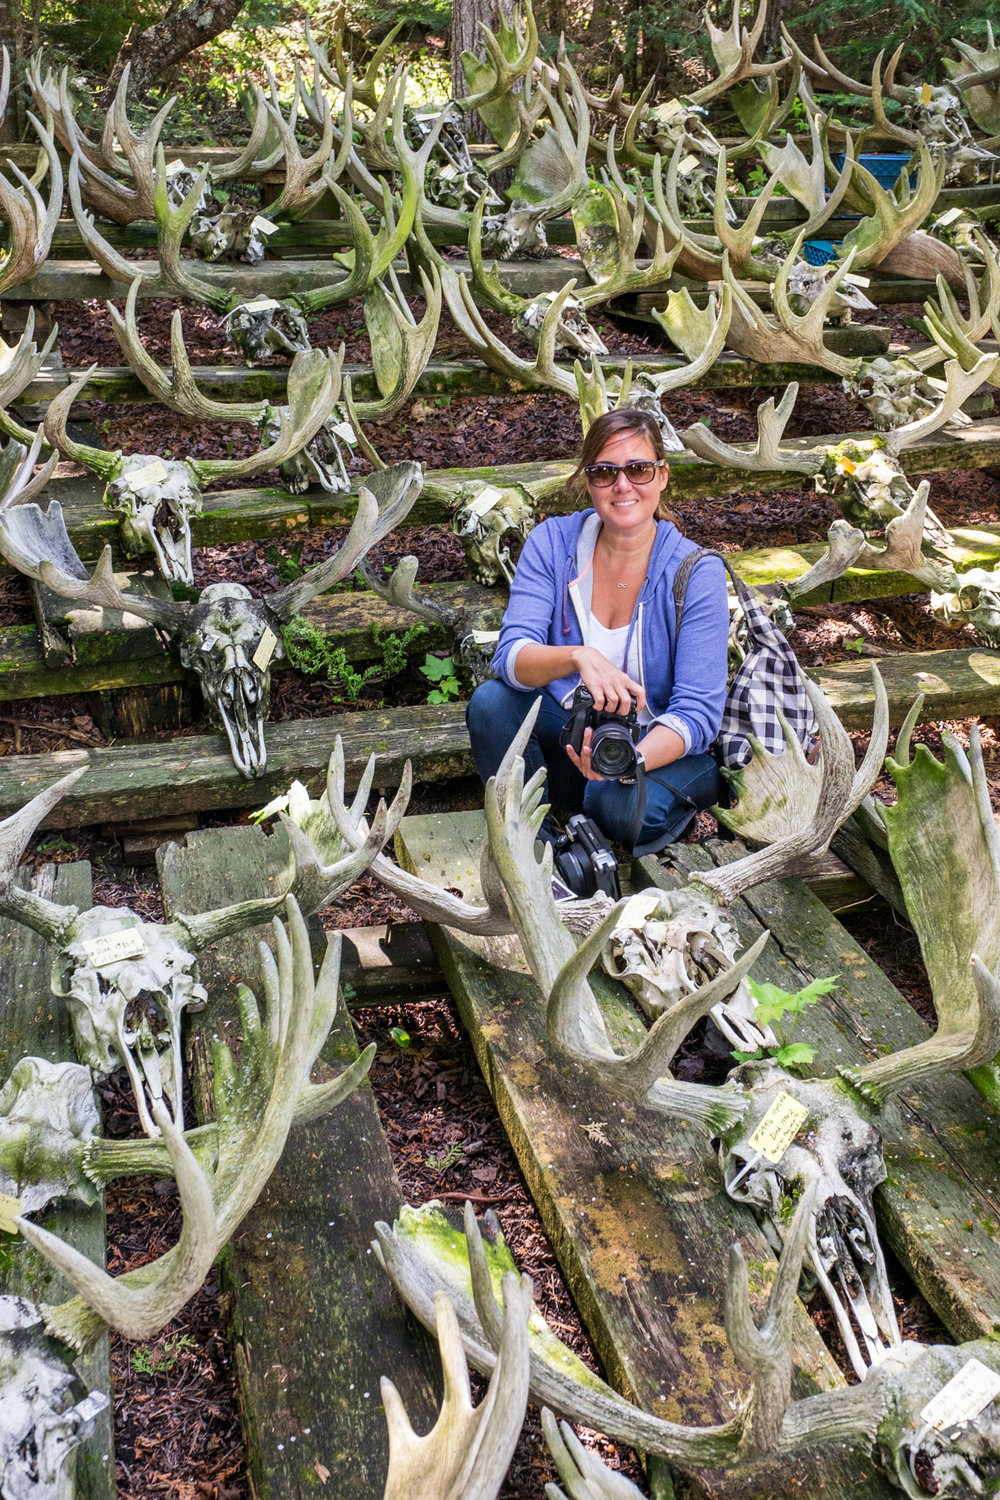 Stef thought I was crazy for asking her to pose in the middle of the skulls, but I thought the place need a bit of beauty.